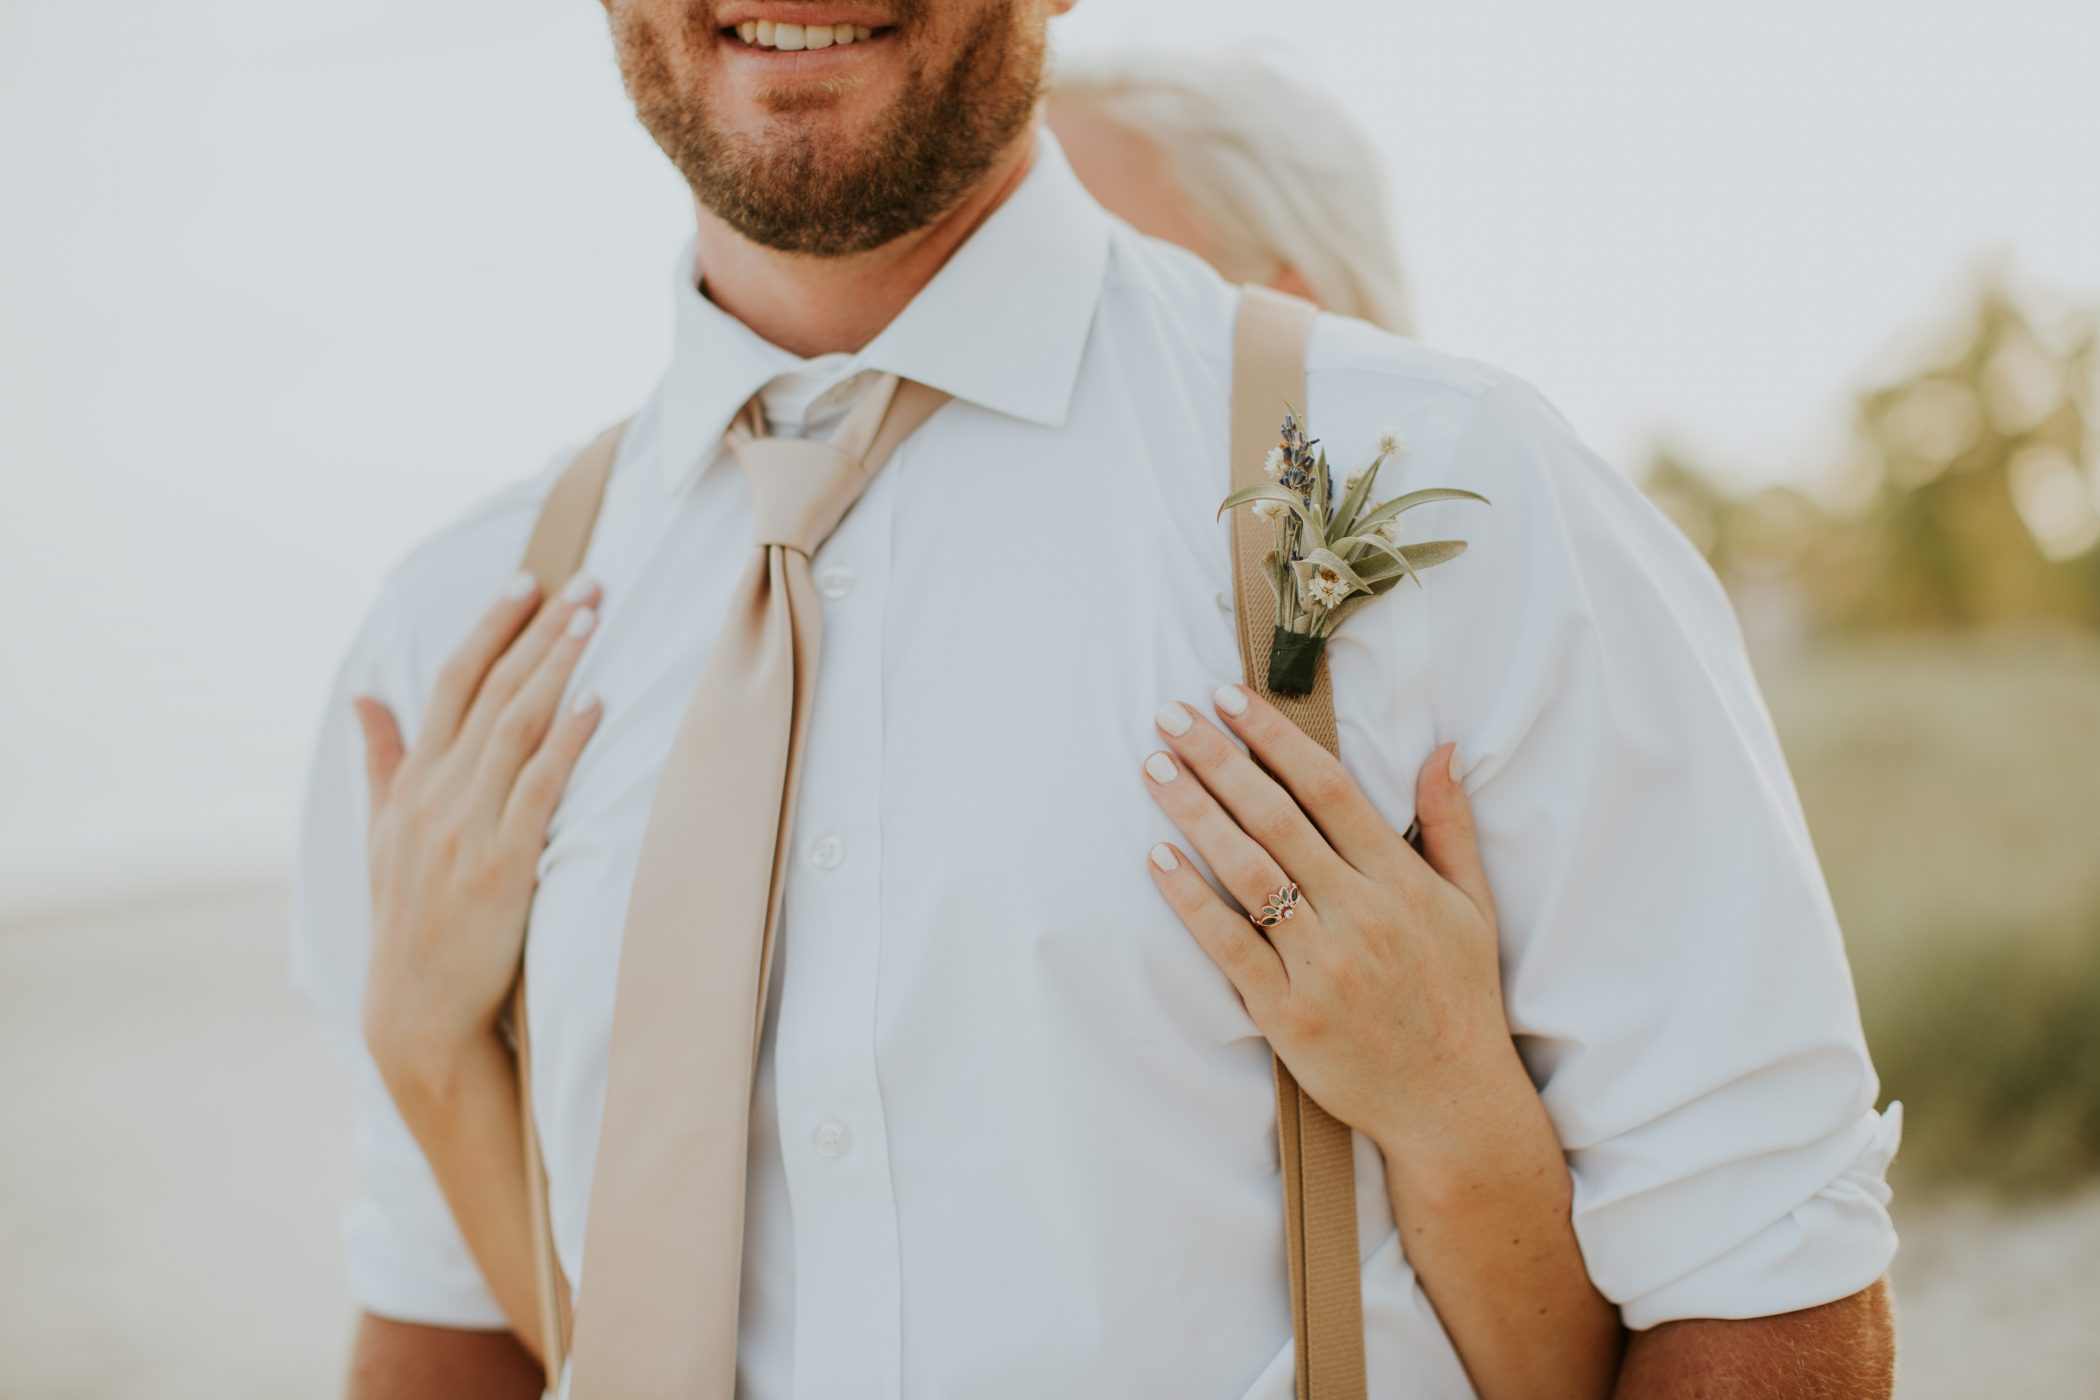 DIY boutonnieres on groom